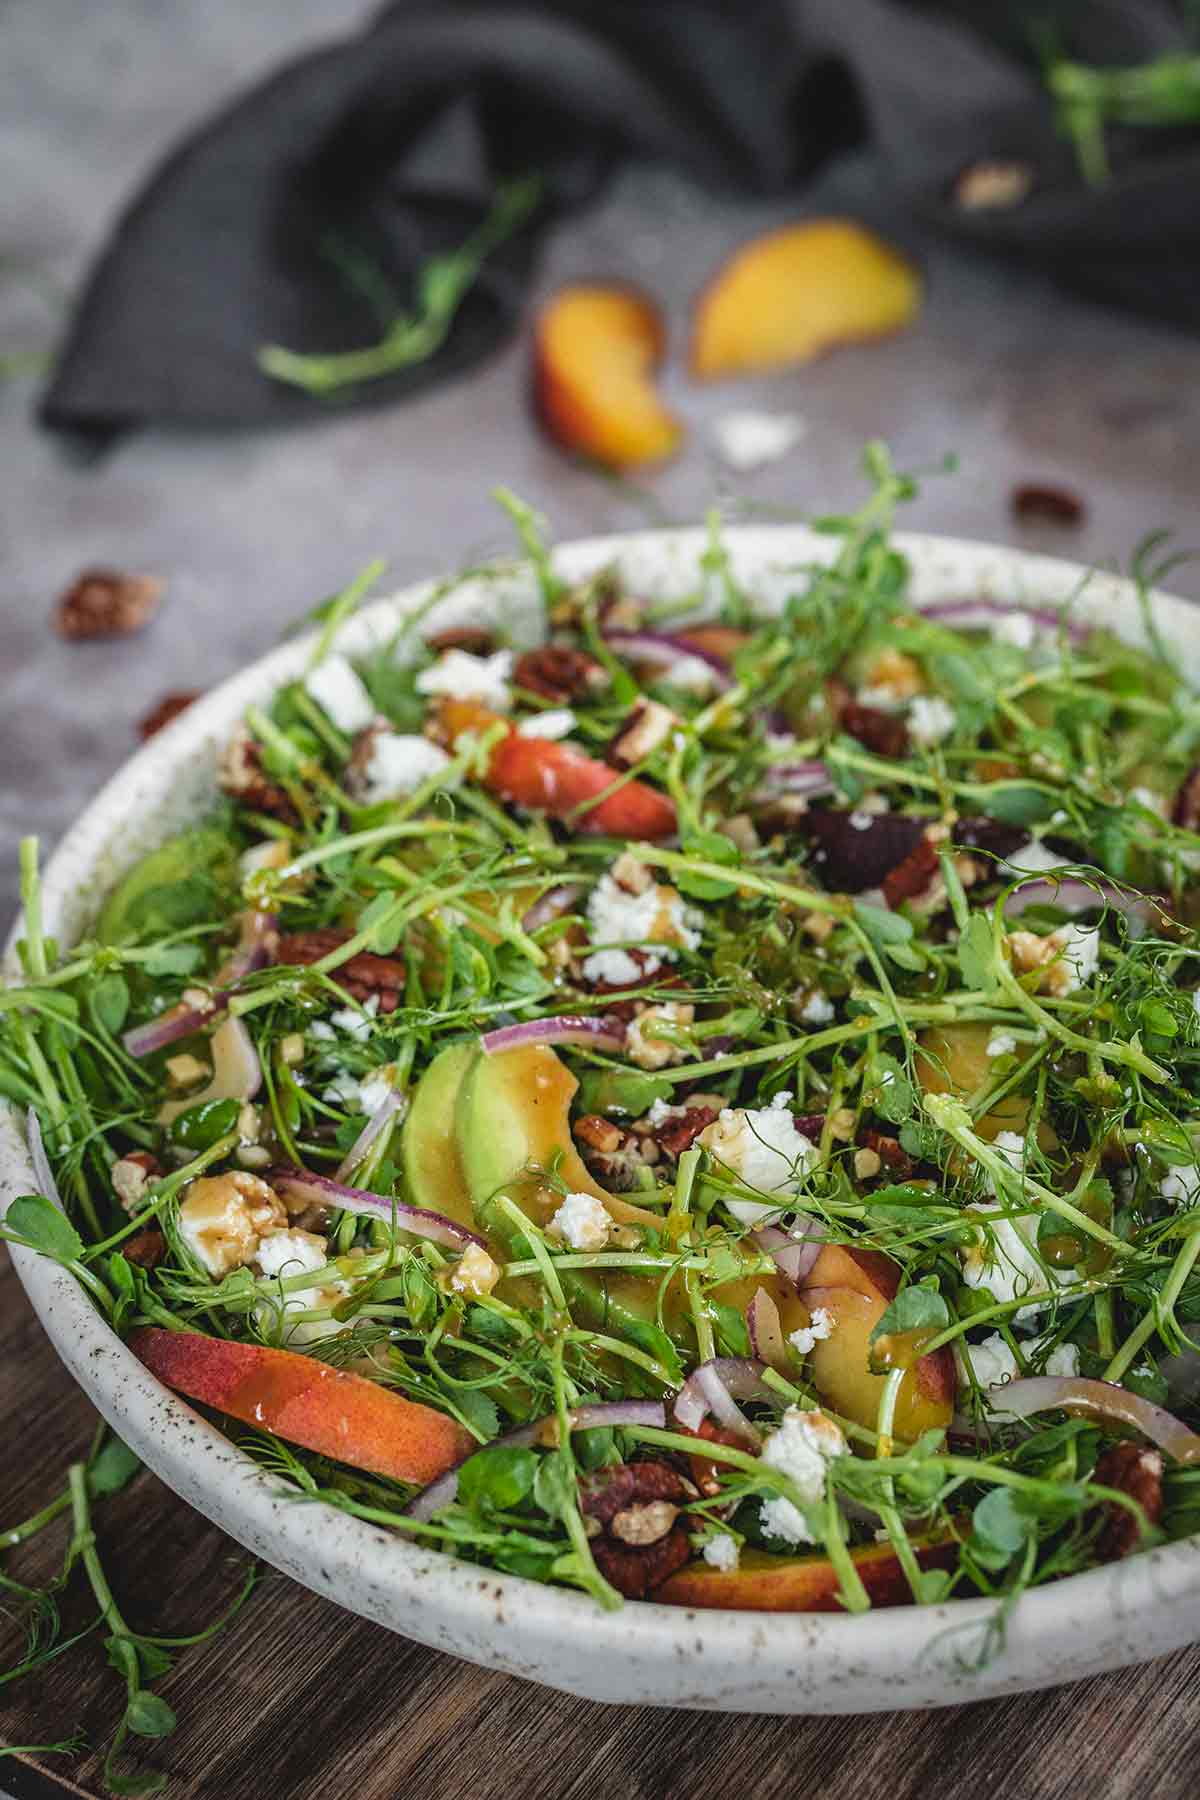 Healthy microgreen salad placed on the table